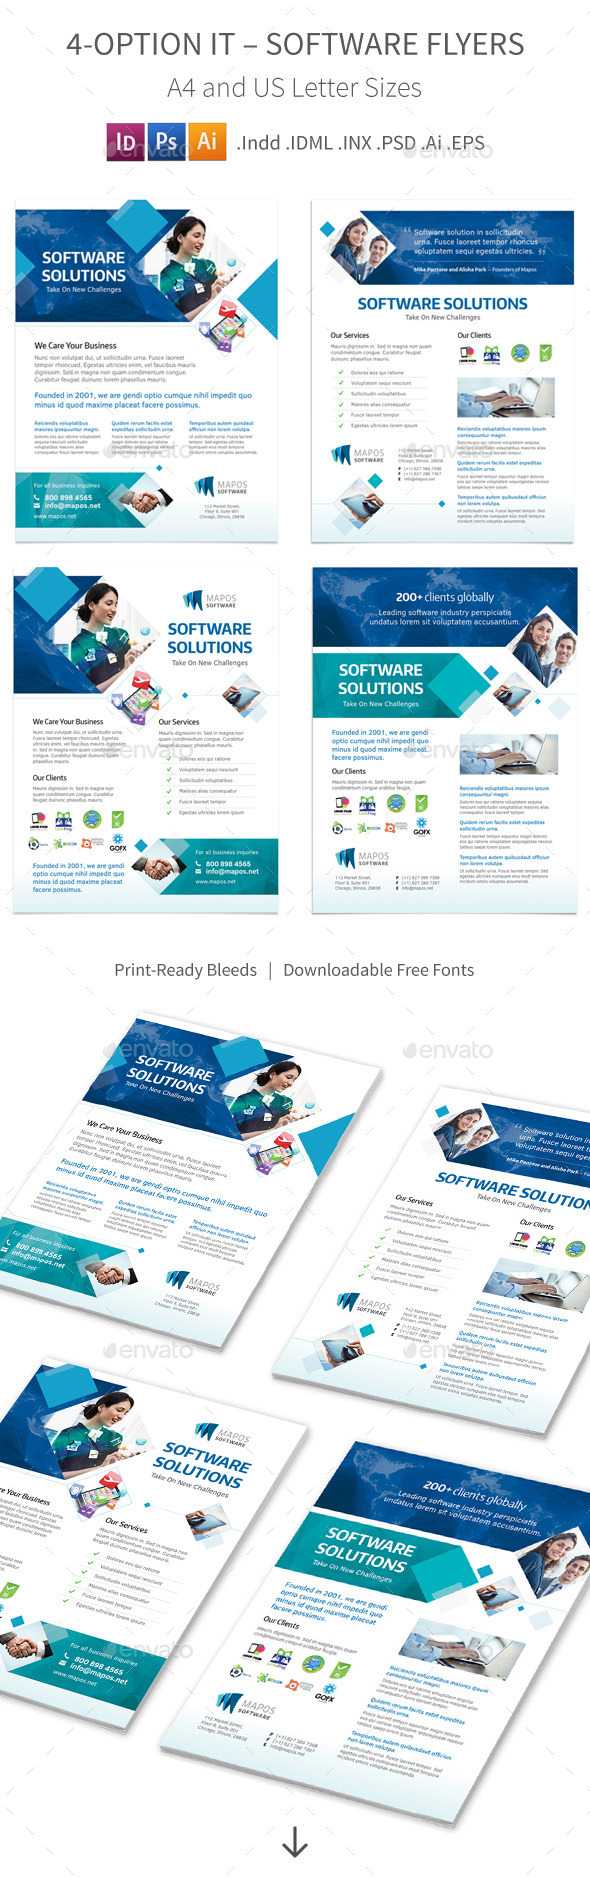 GraphicRiver IT Software Flyers 4 Options 10008671